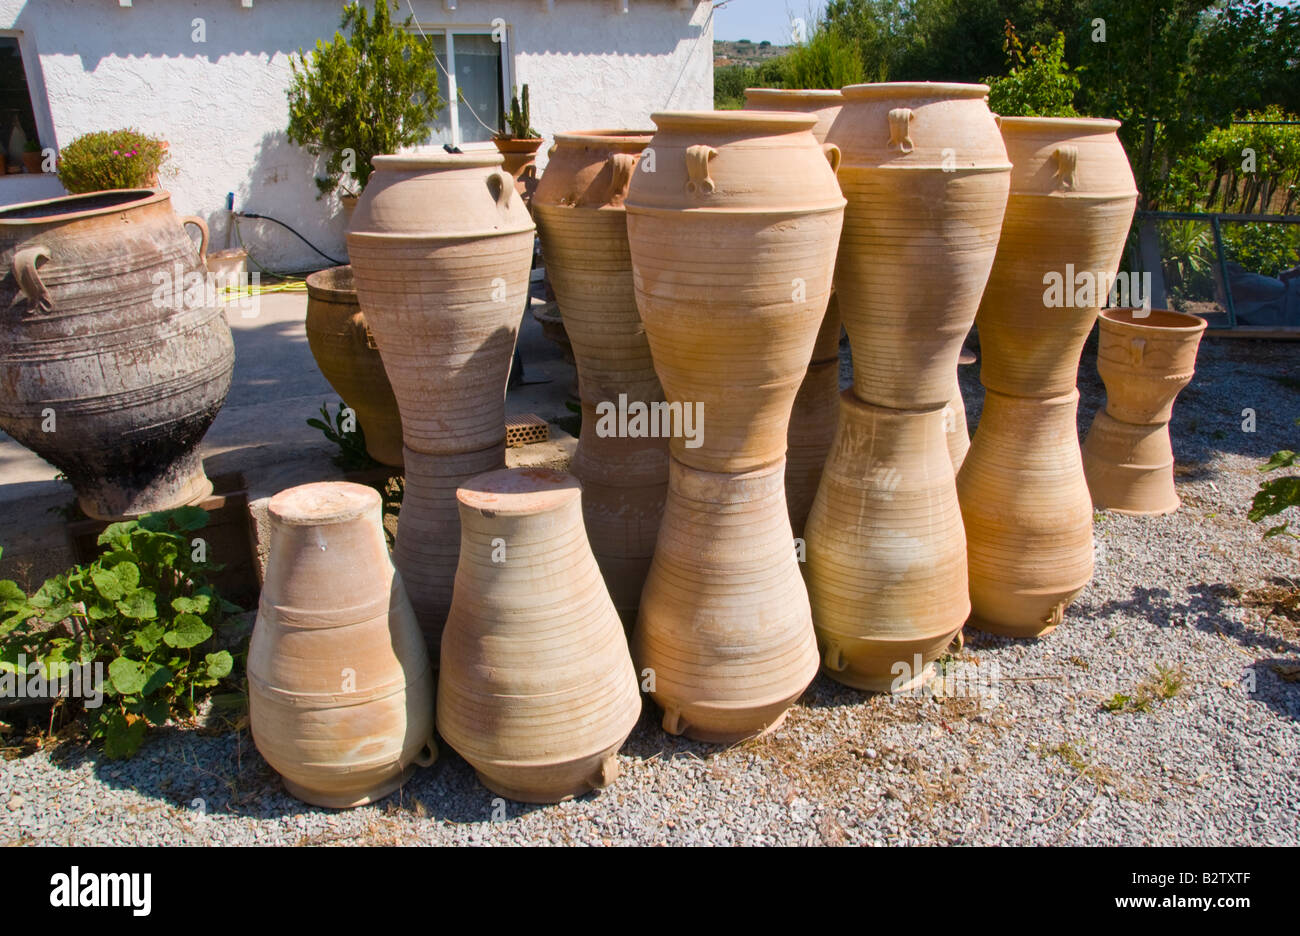 Planters For Sale Online Finished Pots For Sale At Pottery In Thrapsano On The